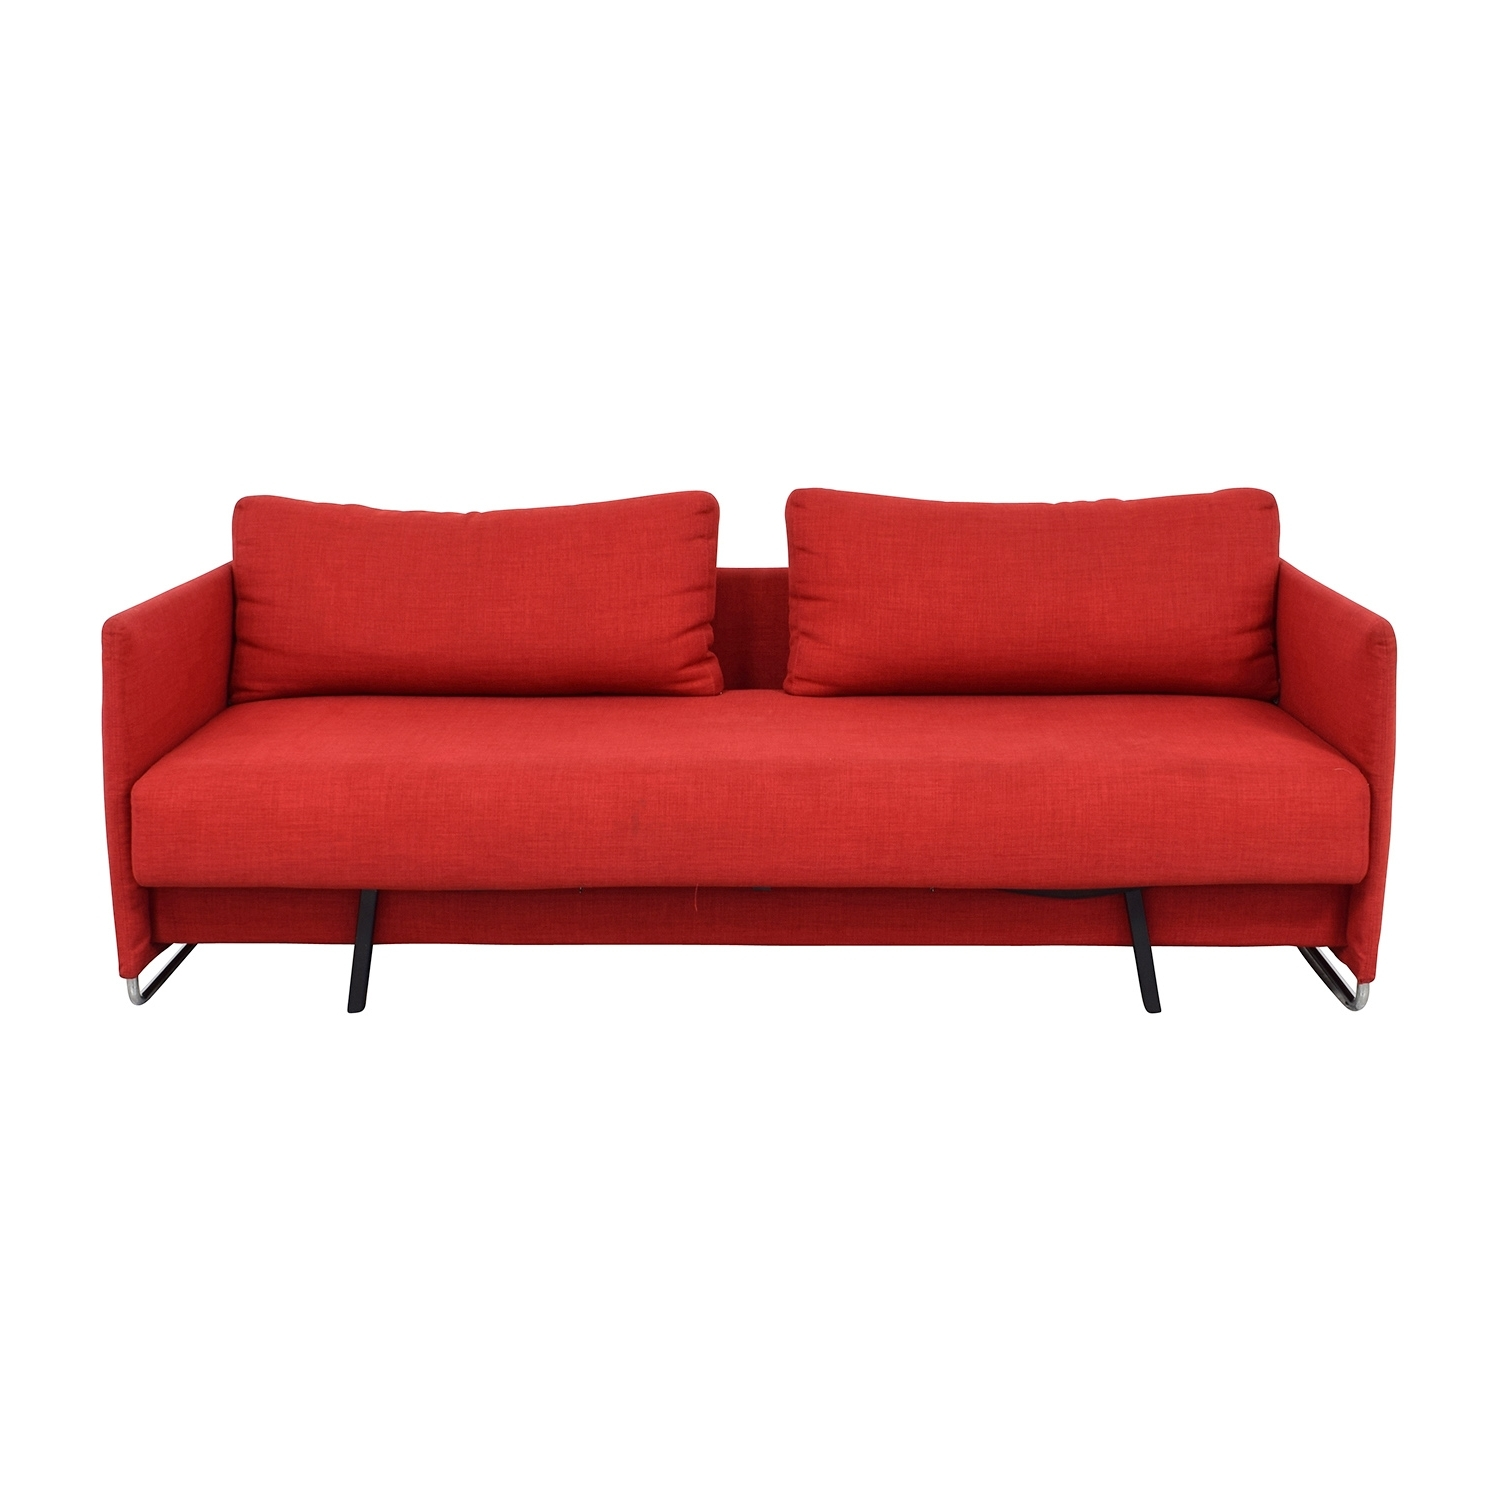 [%74% Off – Cb2 Cb2 Tandom Red Sleeper Sofa / Sofas In Well Known Red Sleeper Sofas|Red Sleeper Sofas Inside Fashionable 74% Off – Cb2 Cb2 Tandom Red Sleeper Sofa / Sofas|Fashionable Red Sleeper Sofas In 74% Off – Cb2 Cb2 Tandom Red Sleeper Sofa / Sofas|Widely Used 74% Off – Cb2 Cb2 Tandom Red Sleeper Sofa / Sofas Intended For Red Sleeper Sofas%] (View 1 of 20)